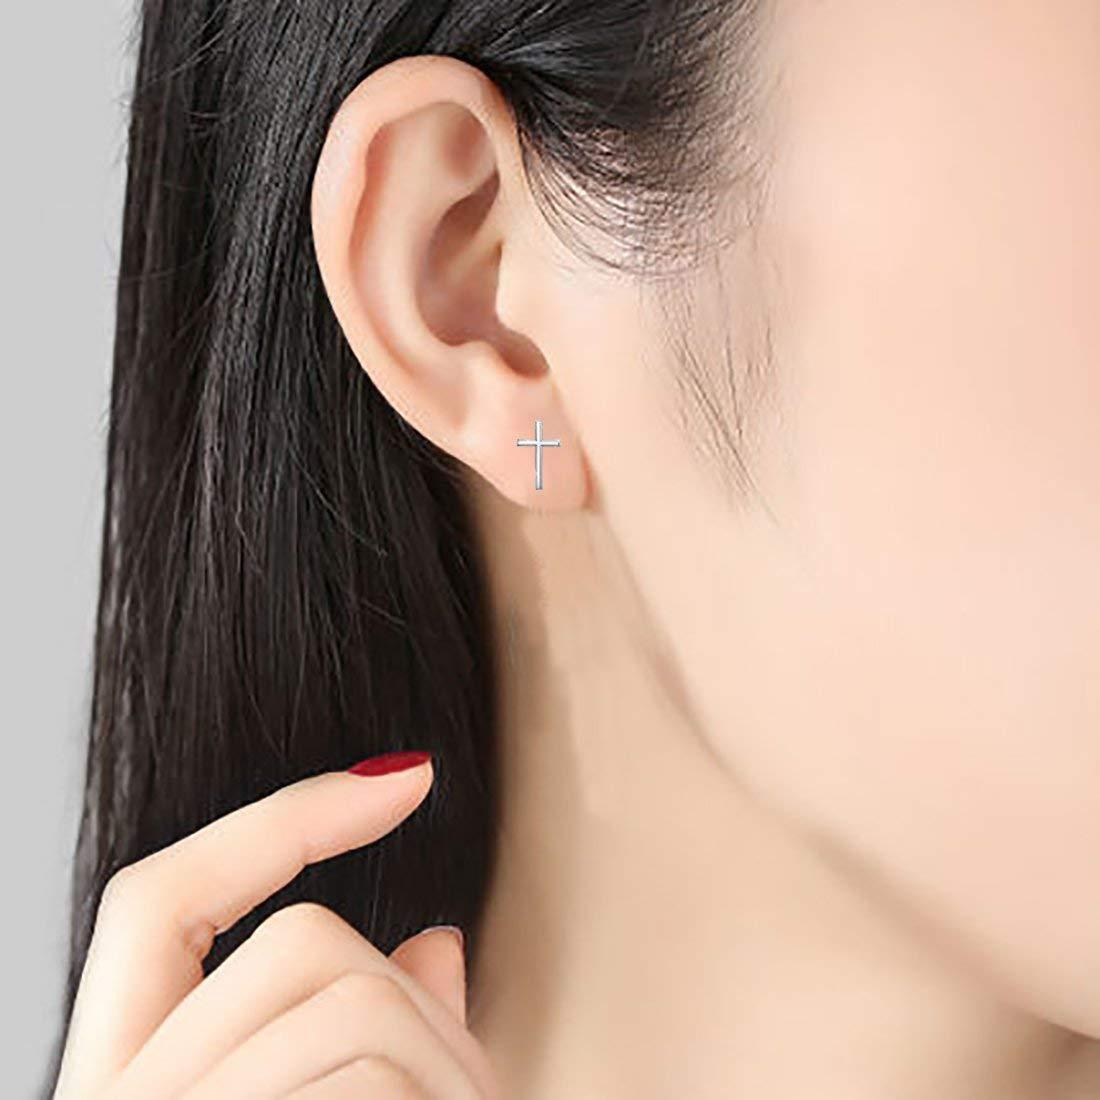 S925 Sleek Minimalist Cross Earrings Jewelry